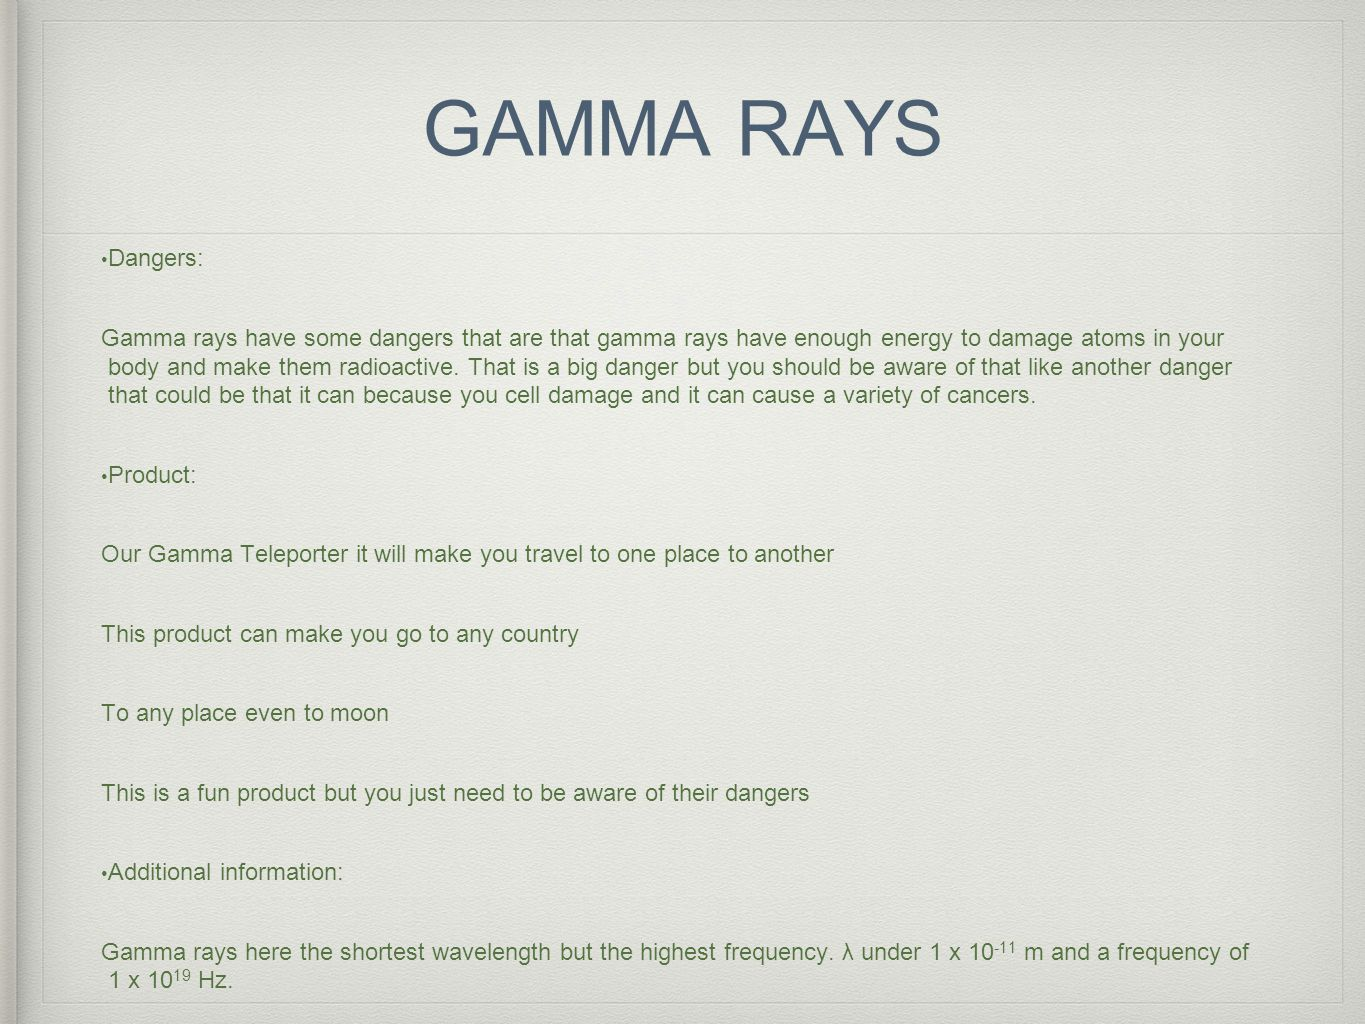 GAMMA RAYS Dangers: Gamma rays have some dangers that are that gamma rays have enough energy to damage atoms in your body and make them radioactive.